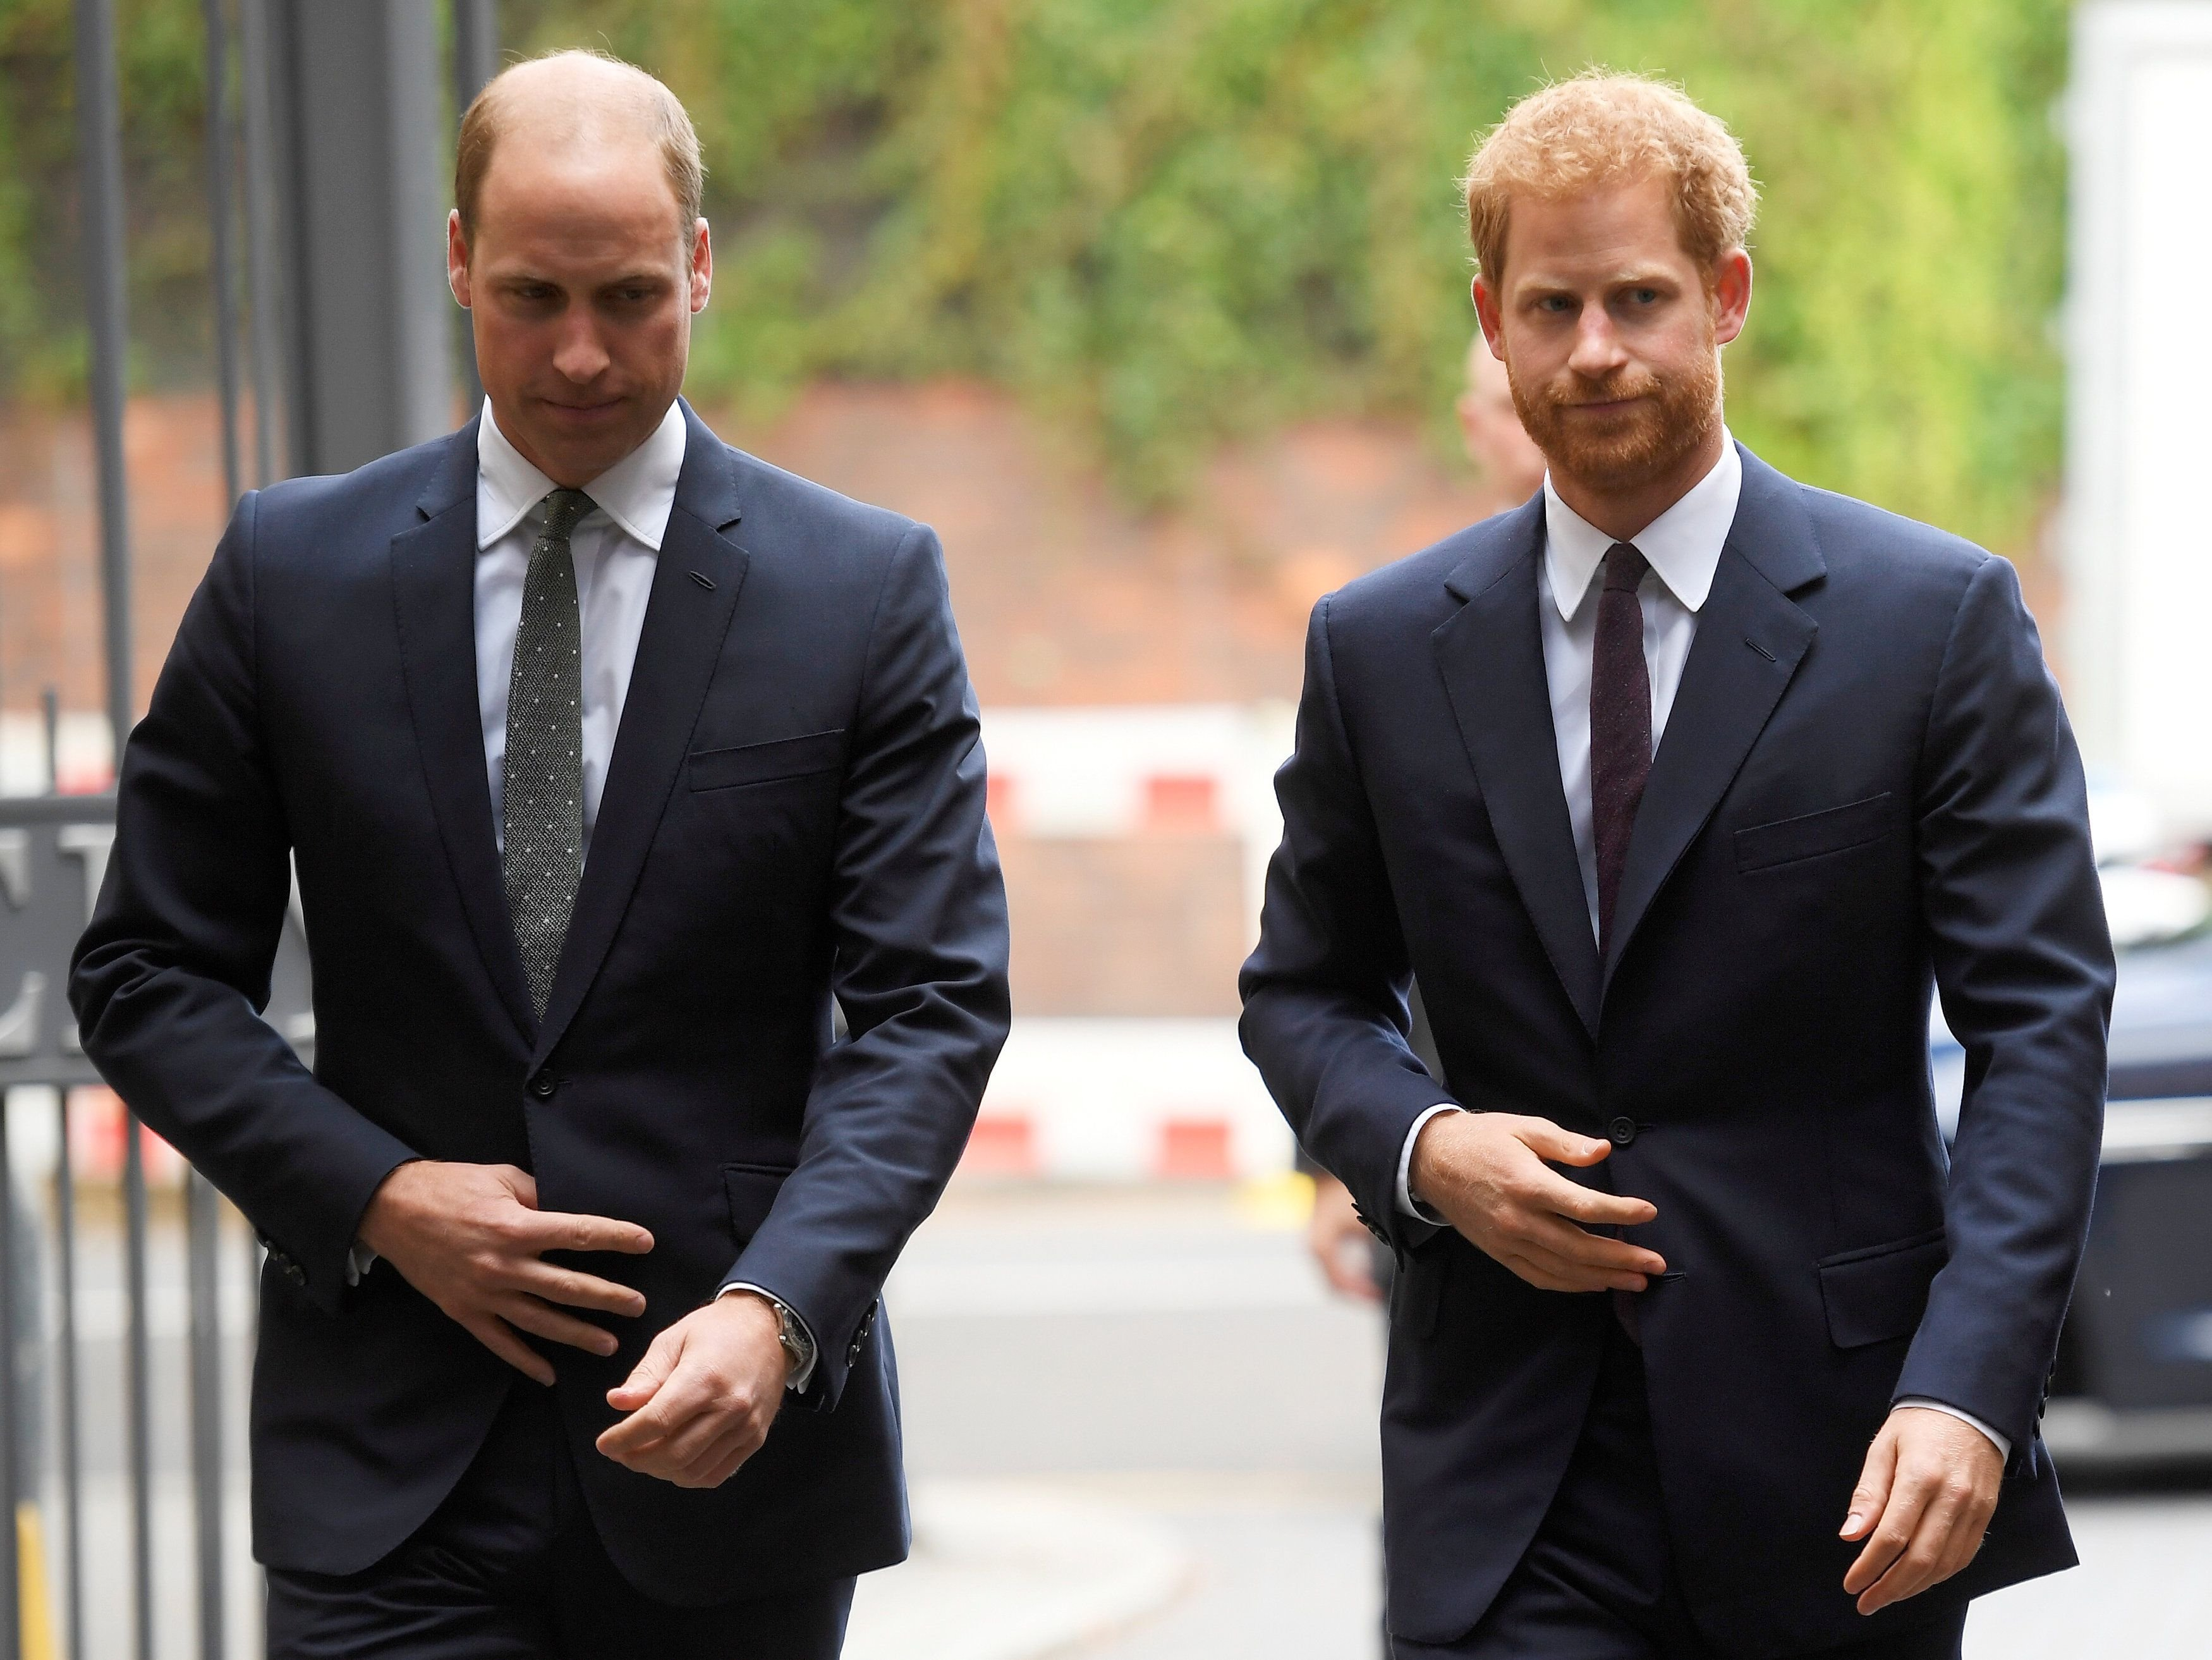 Prince William, Duke of Cambridge, and Prince Harry during a visit to the newly established Royal Foundation Support4Grenfell community hub in London, England | Photo: Toby Melville - WPA Pool / Getty Images